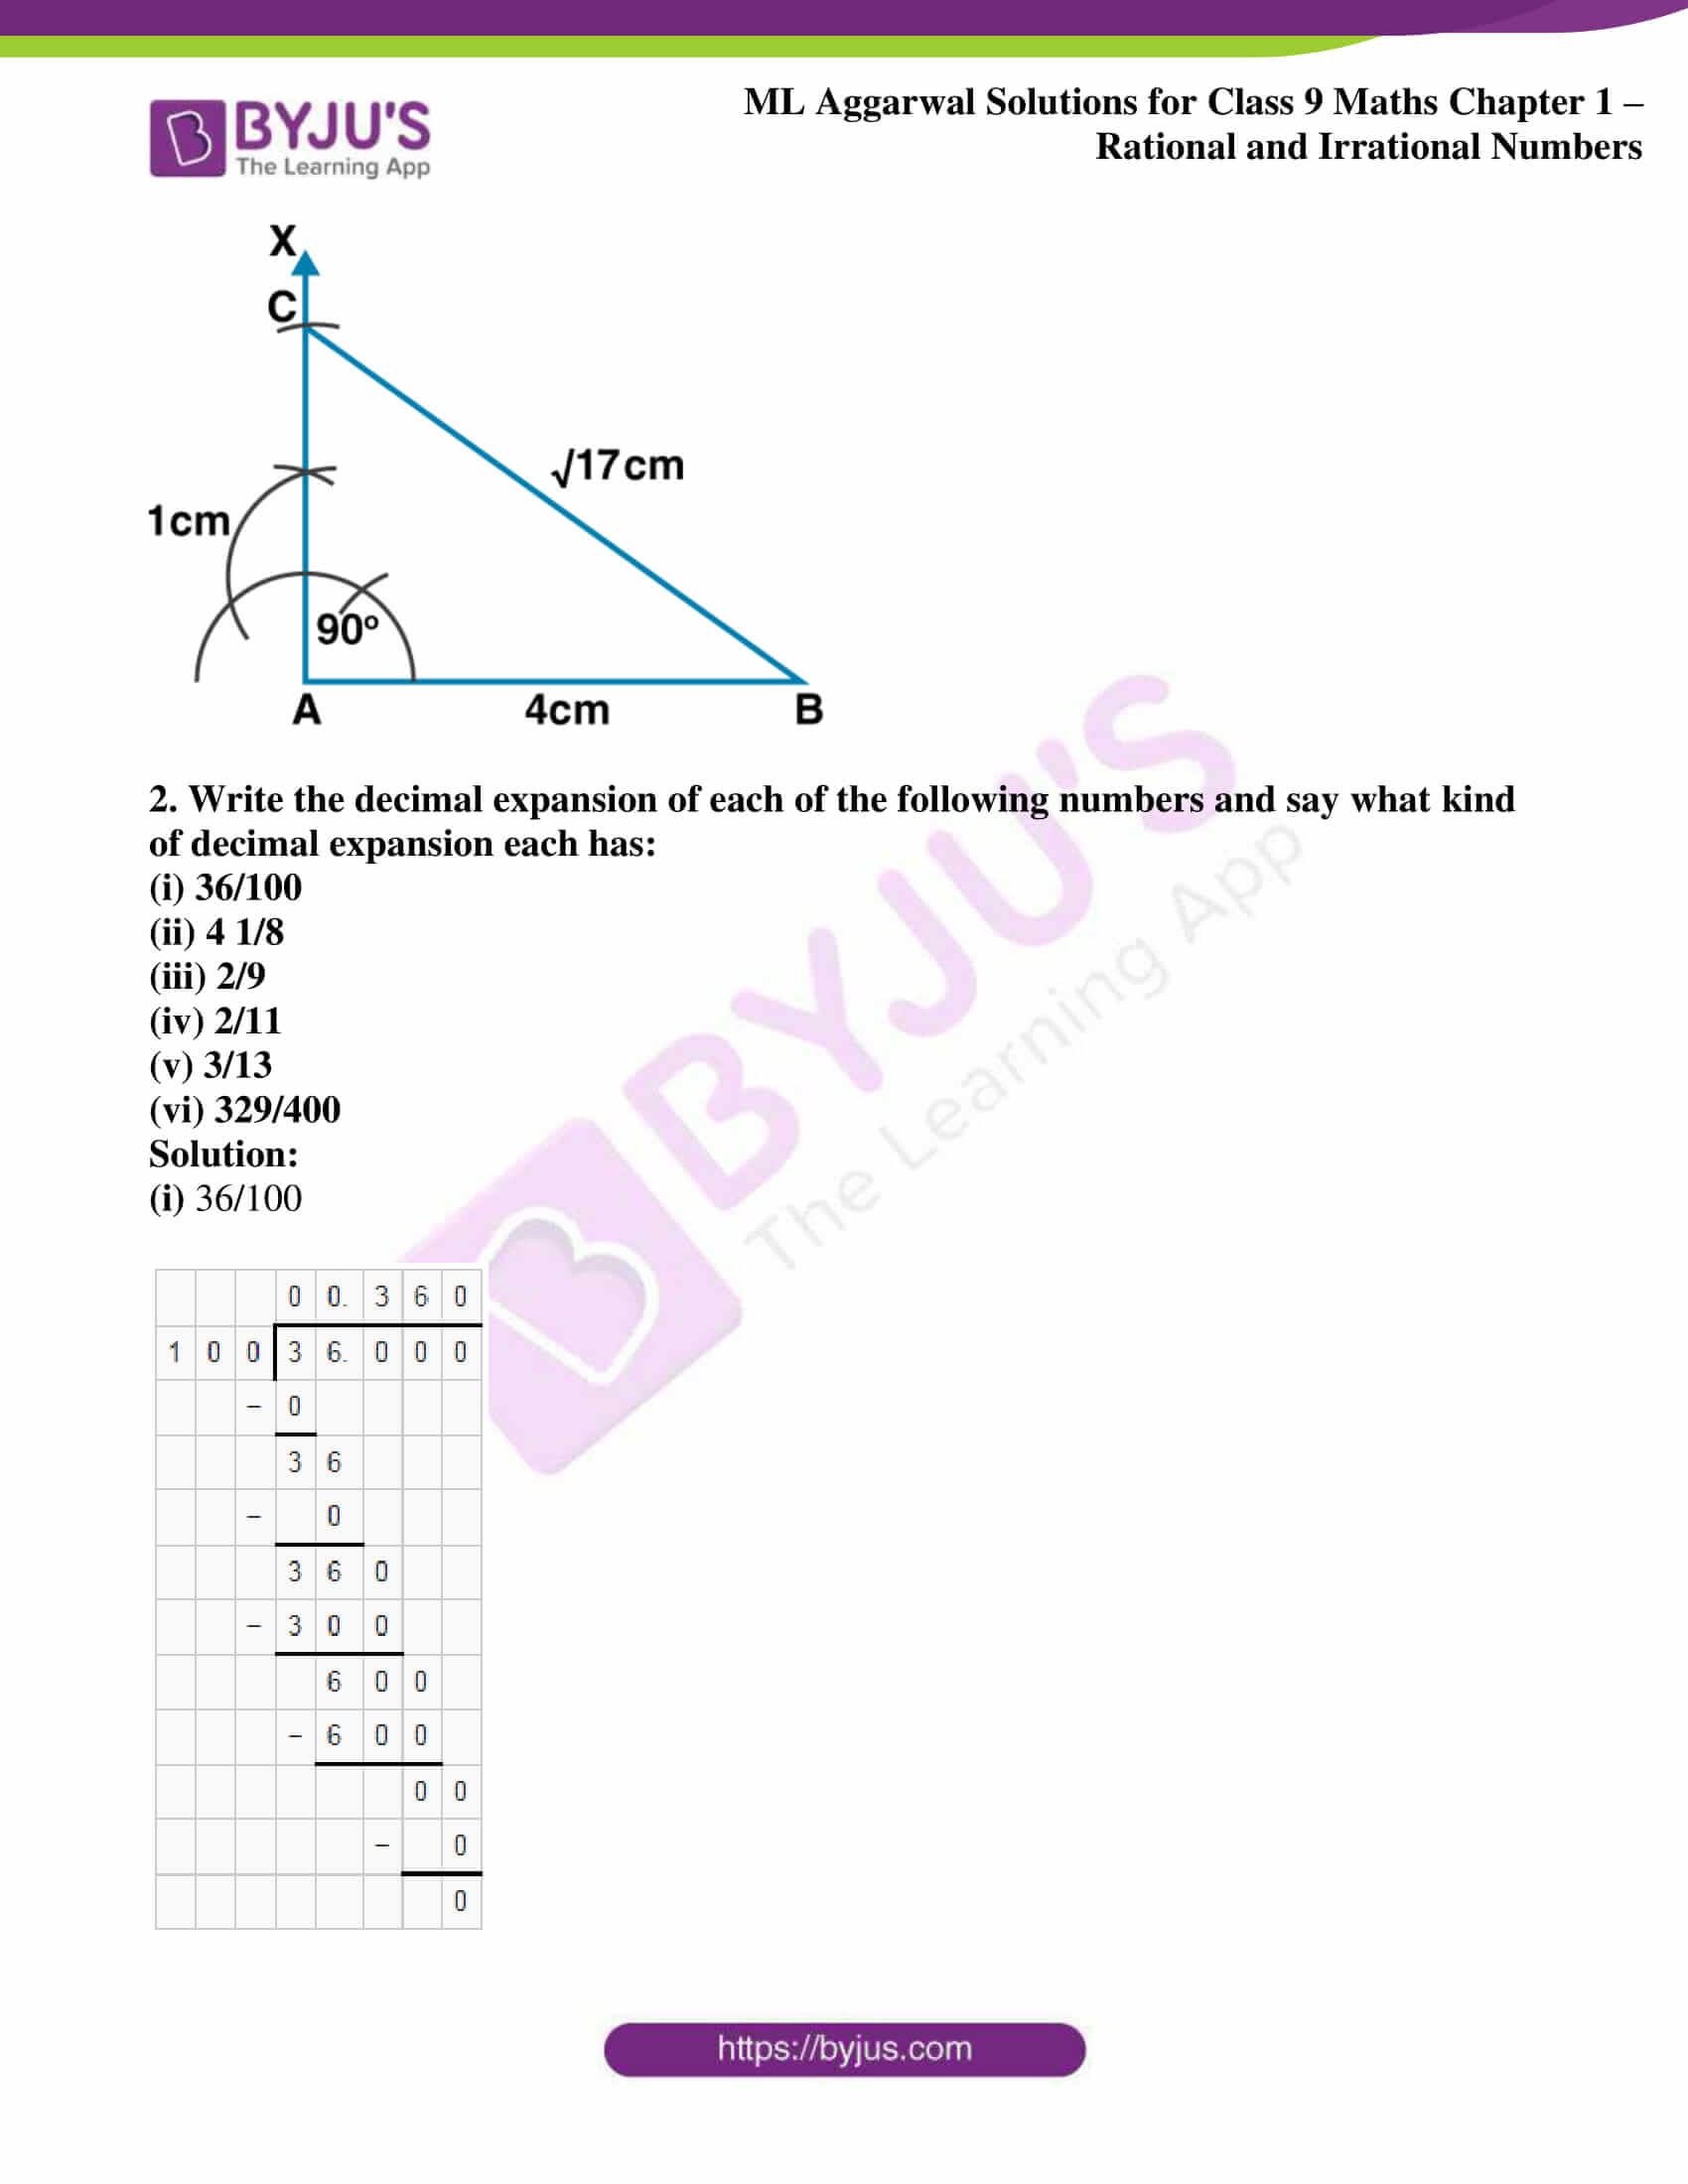 ml aggarwal solutions for class 9 maths chapter 1 16